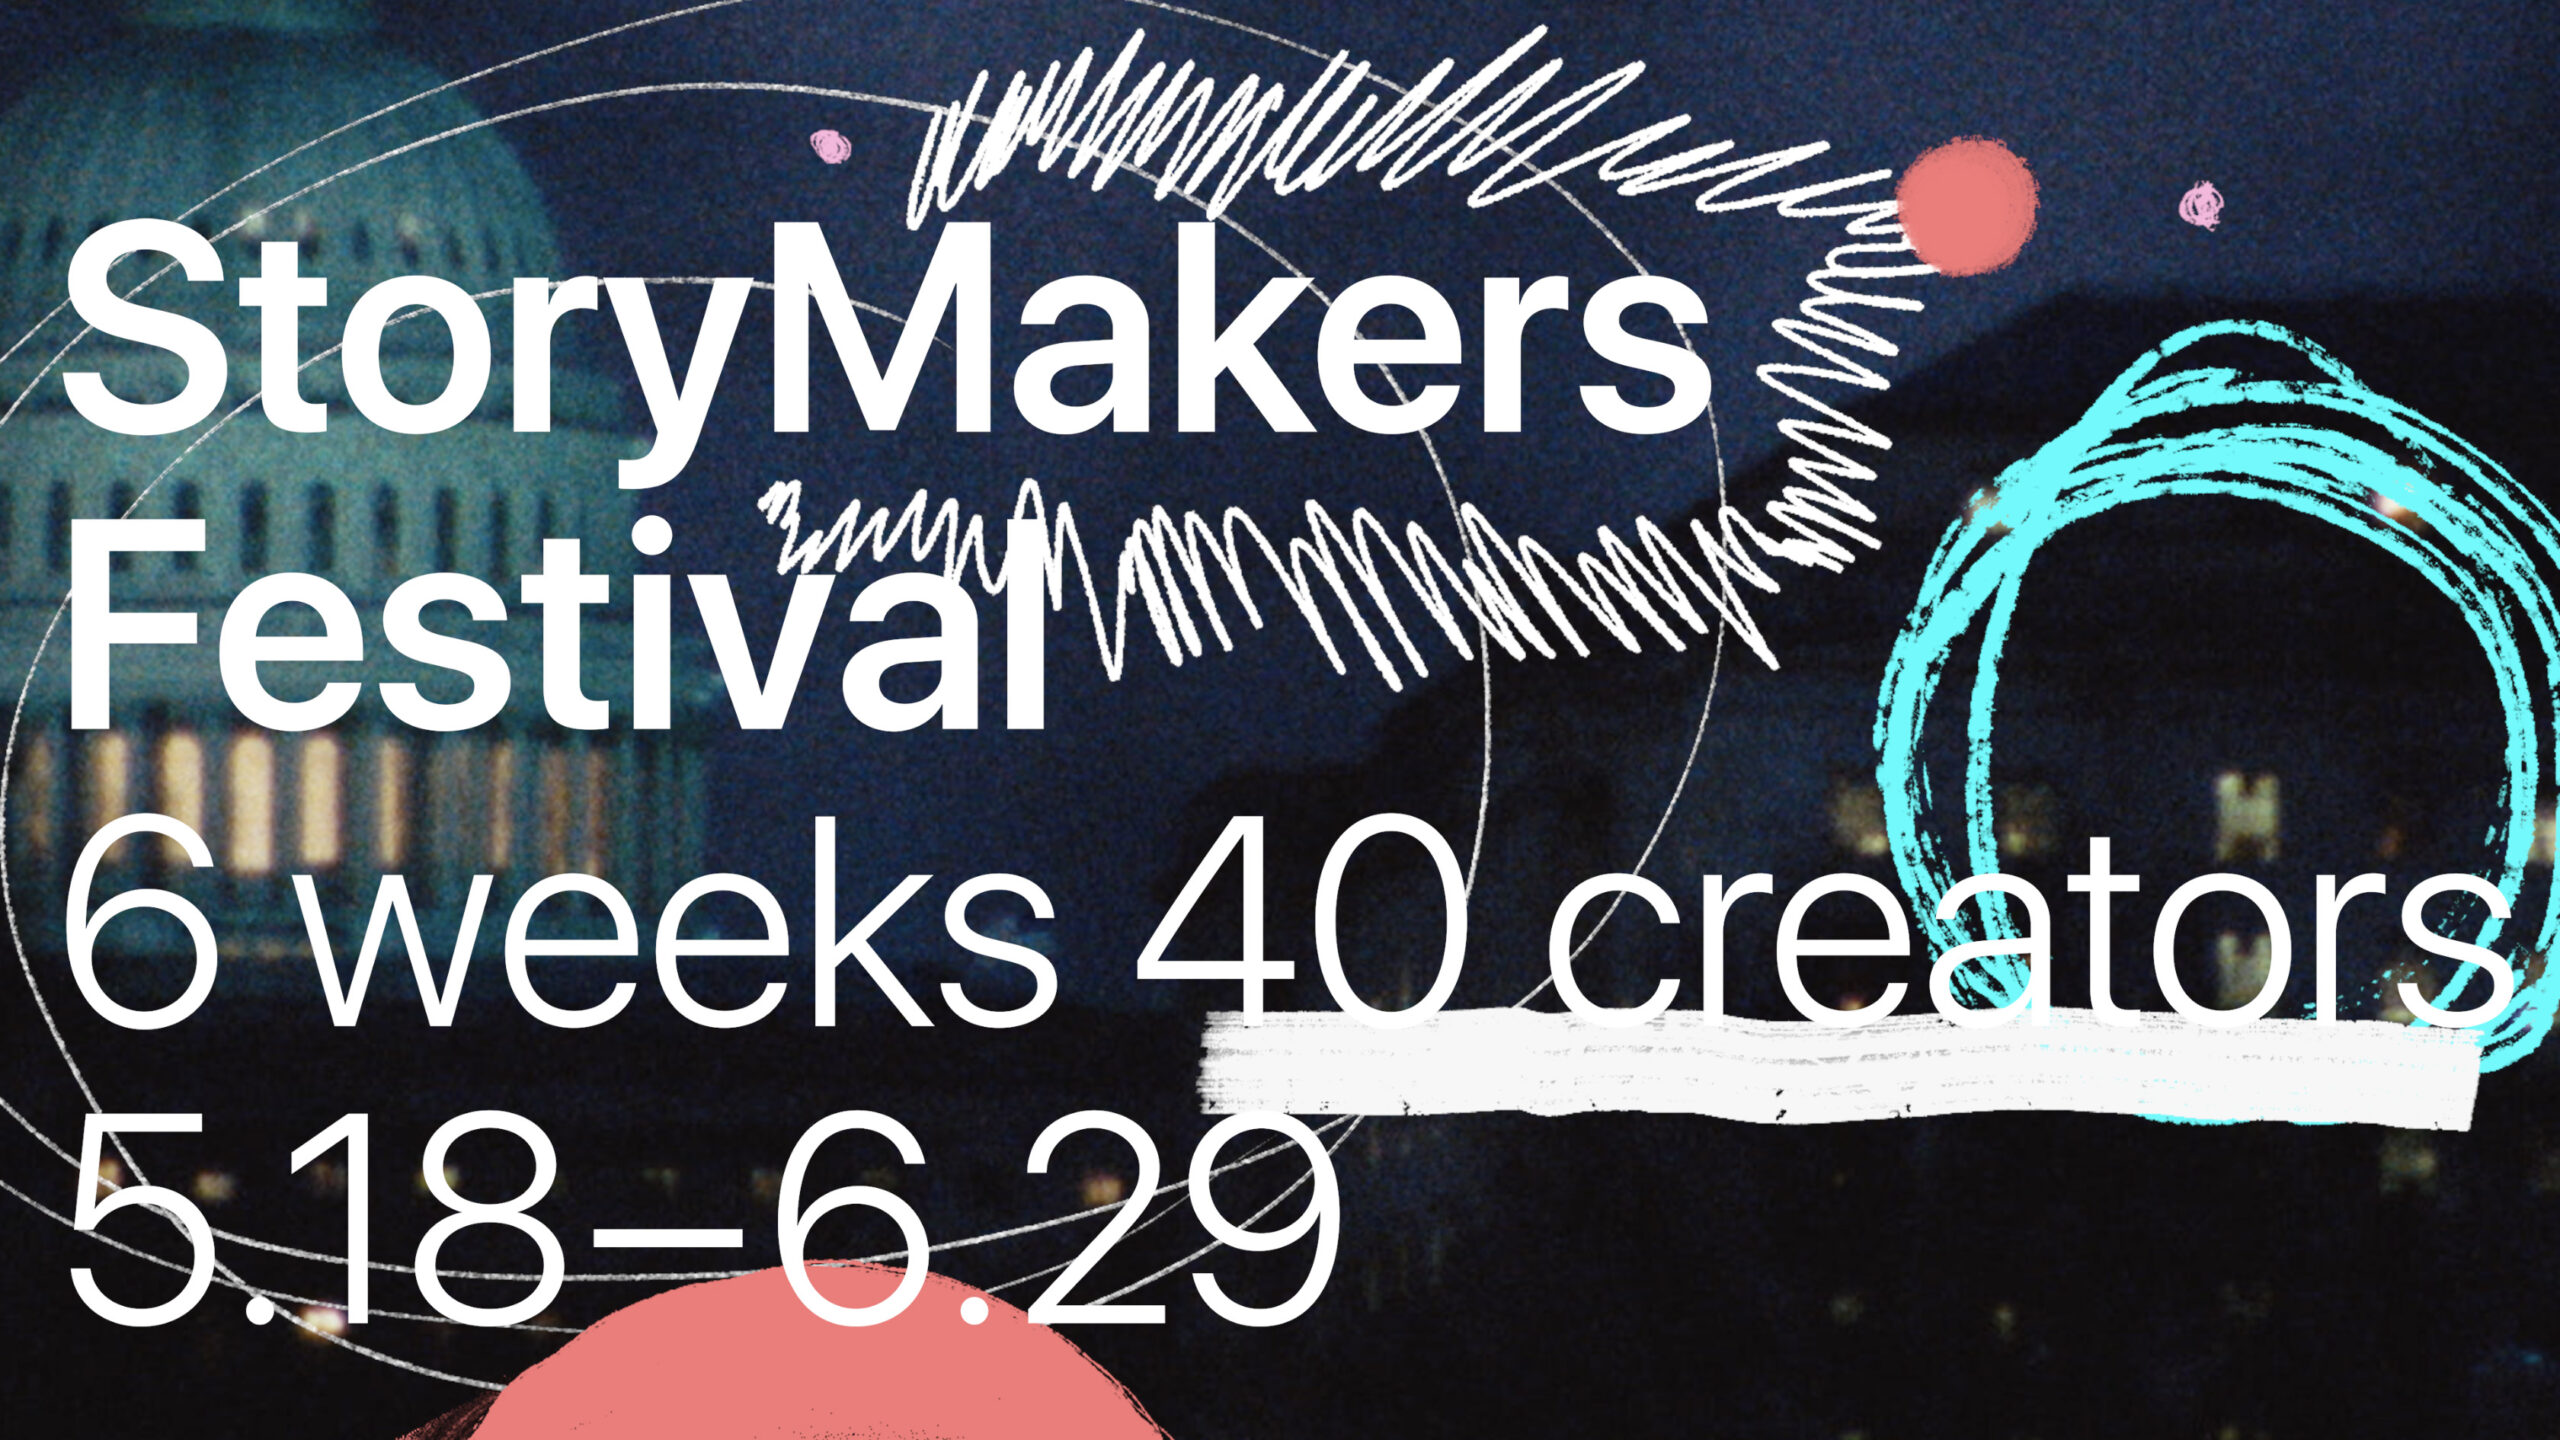 Apple: StoryMakers Festival